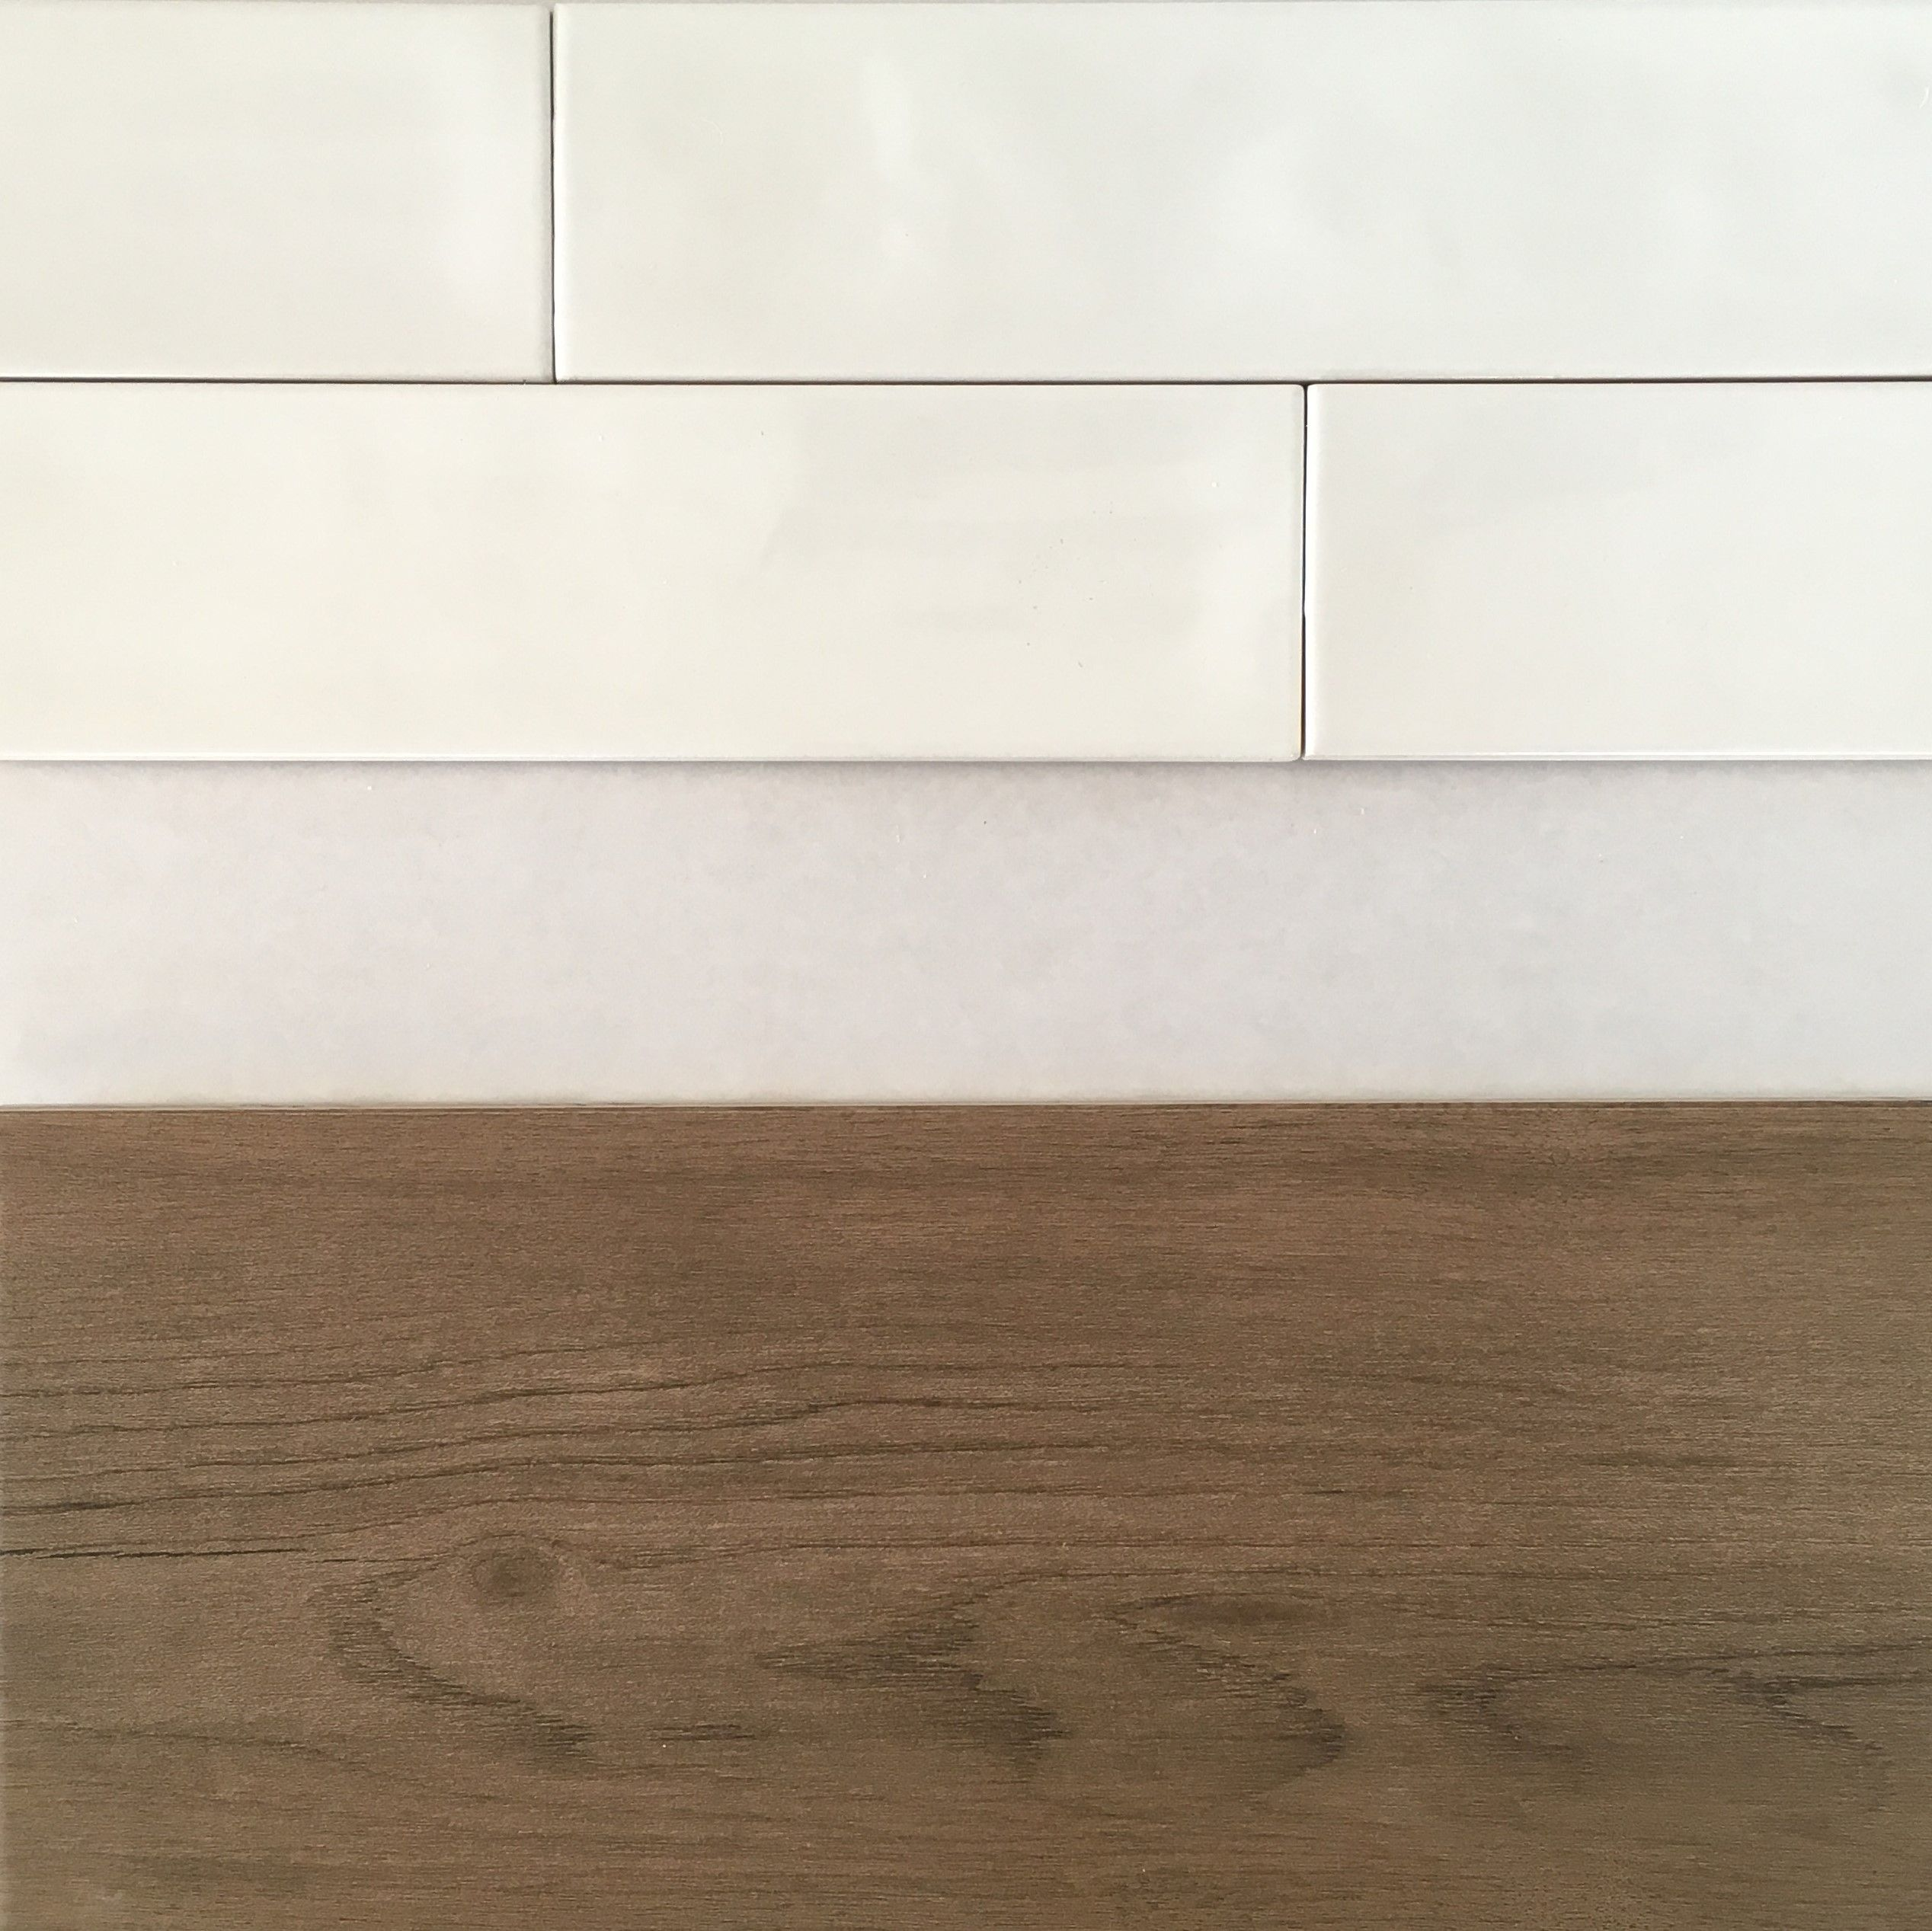 Level 4 Bath Tile Bianco 2 5x10 5 Wall With Bryce Brown 6x36 Floor Bath Tiles Flooring Tiles